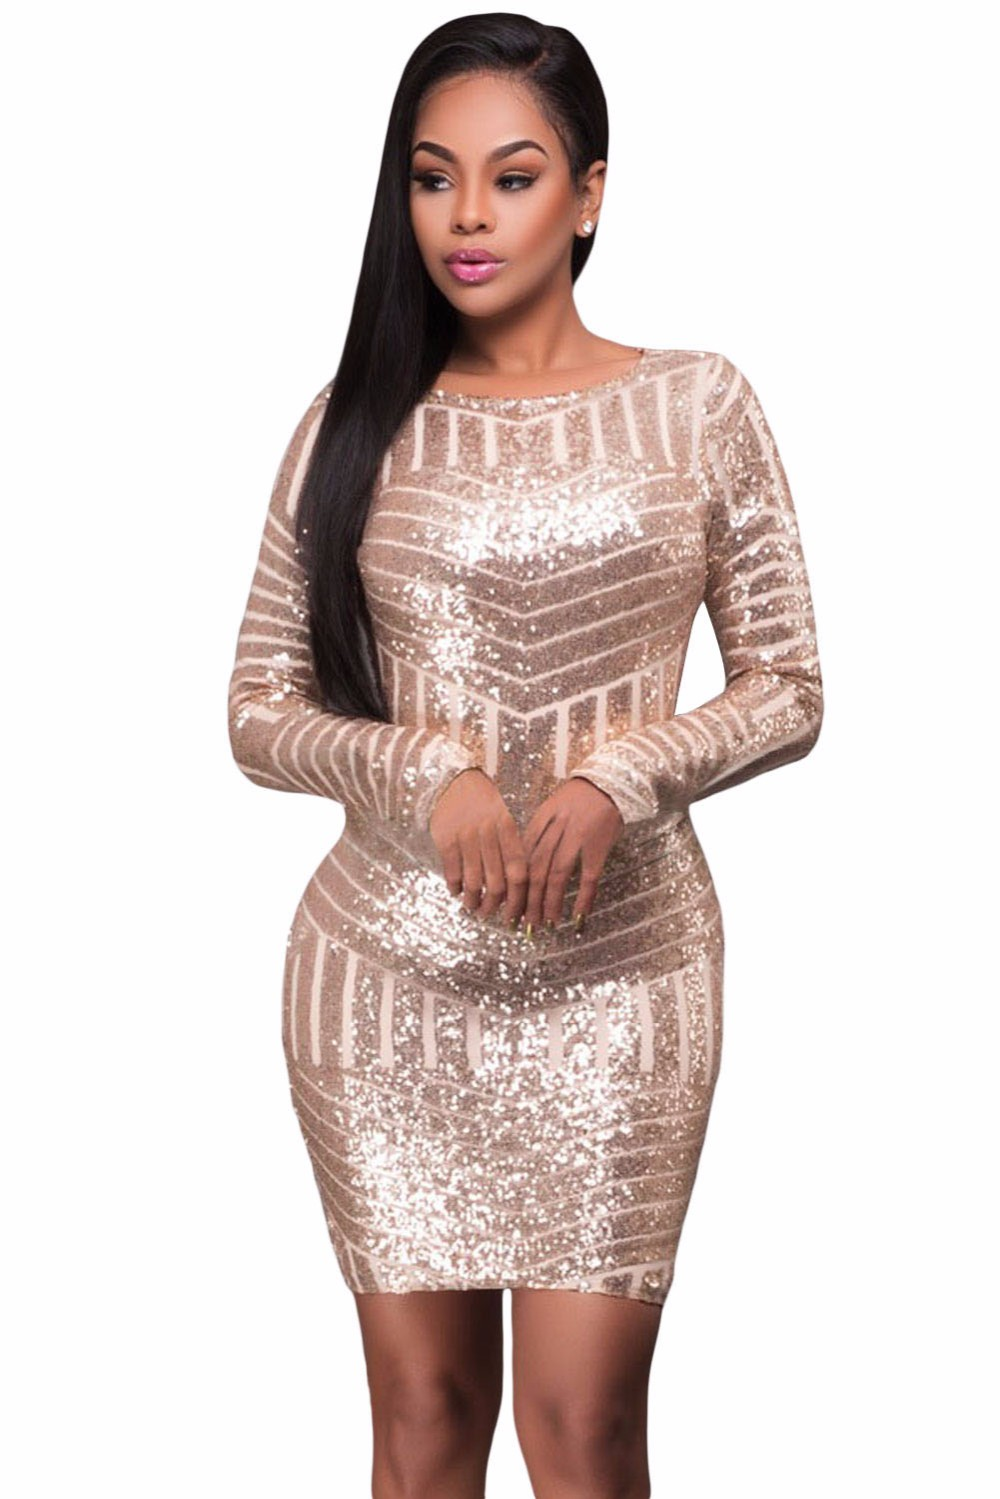 Champagne-Long-Sleeves-Cut-out-Bare-Back-Sequin-Dress-LC22924-10-2